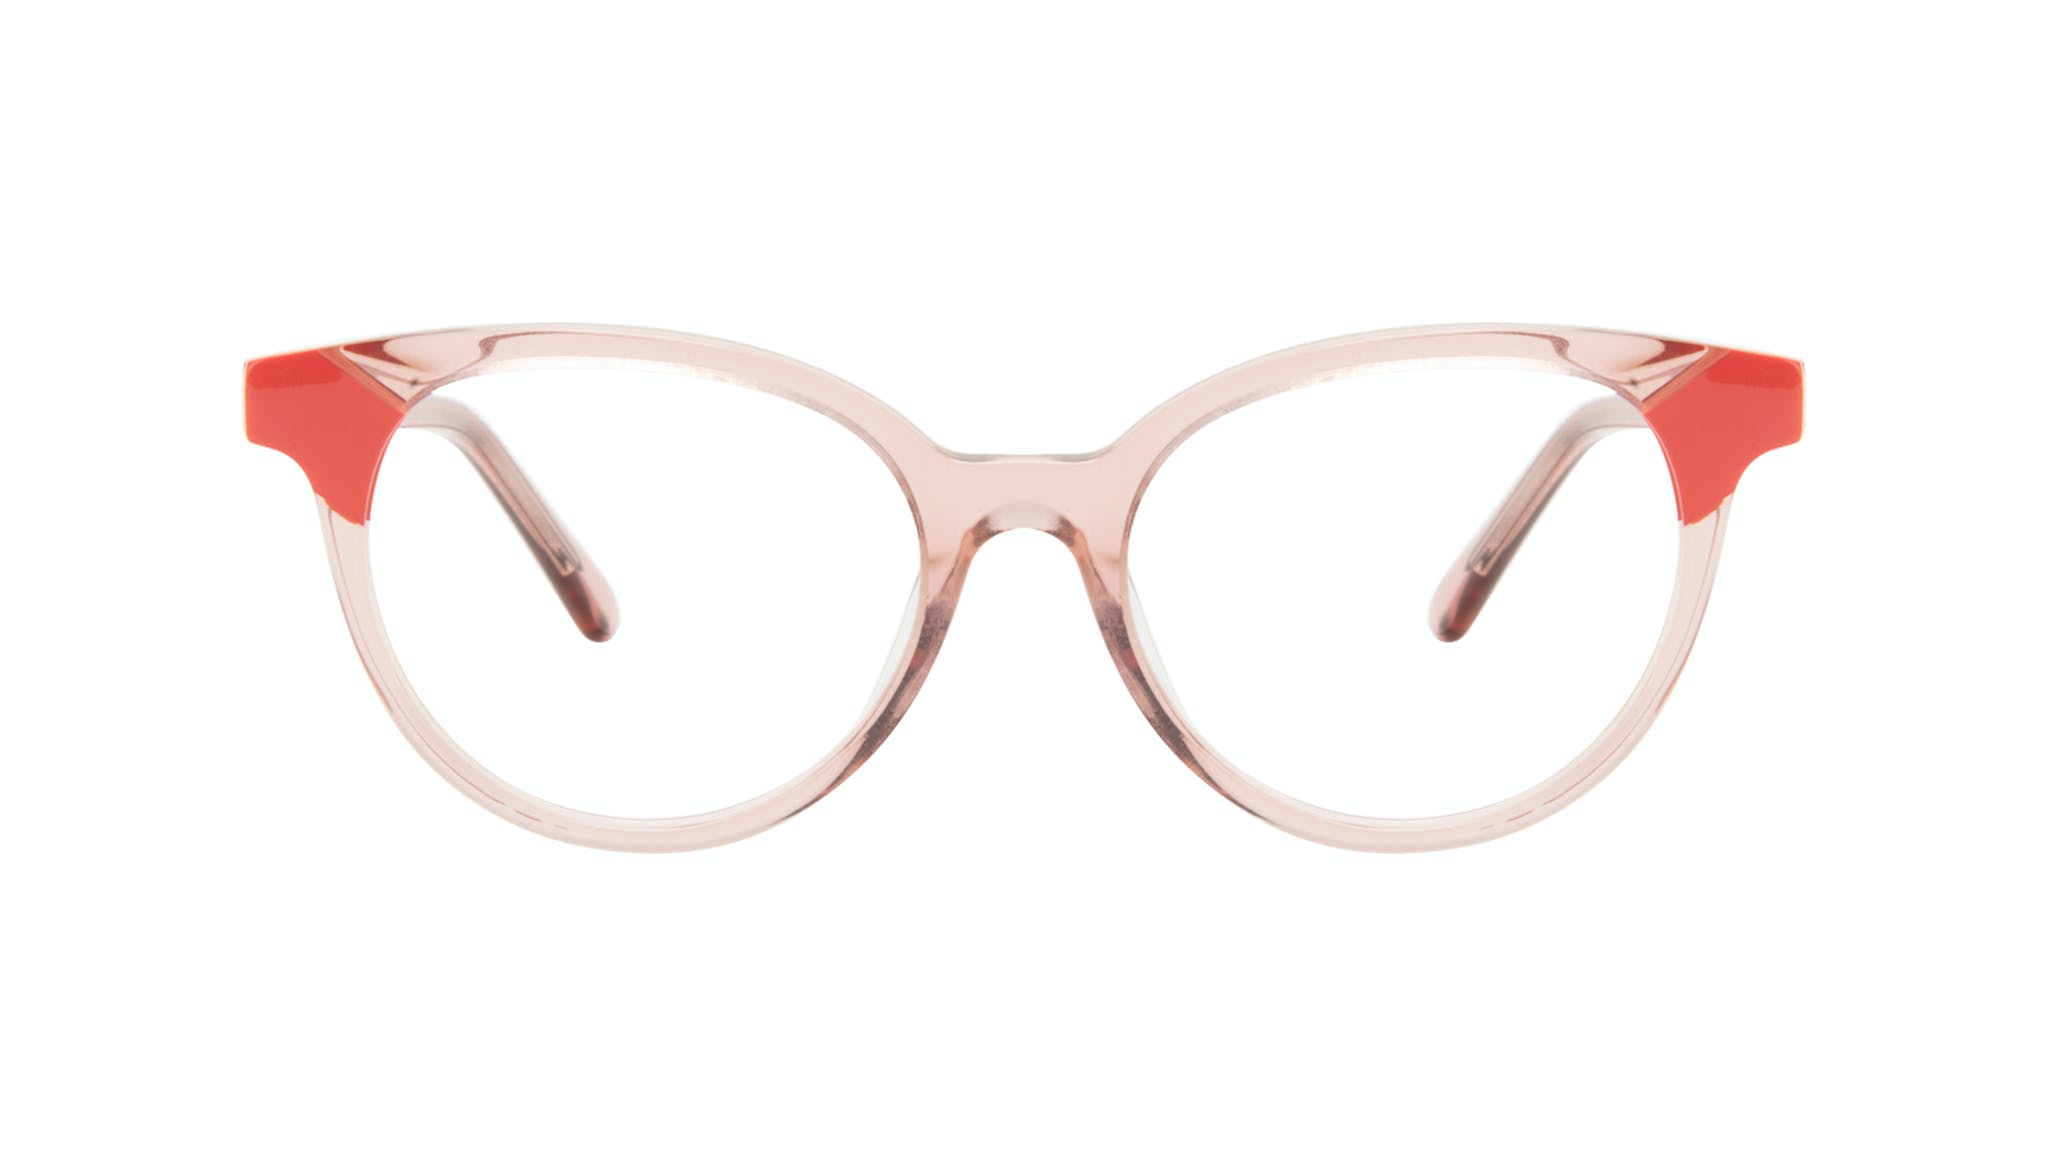 Affordable Fashion Glasses Round Eyeglasses Women Bright Pink Coral Front